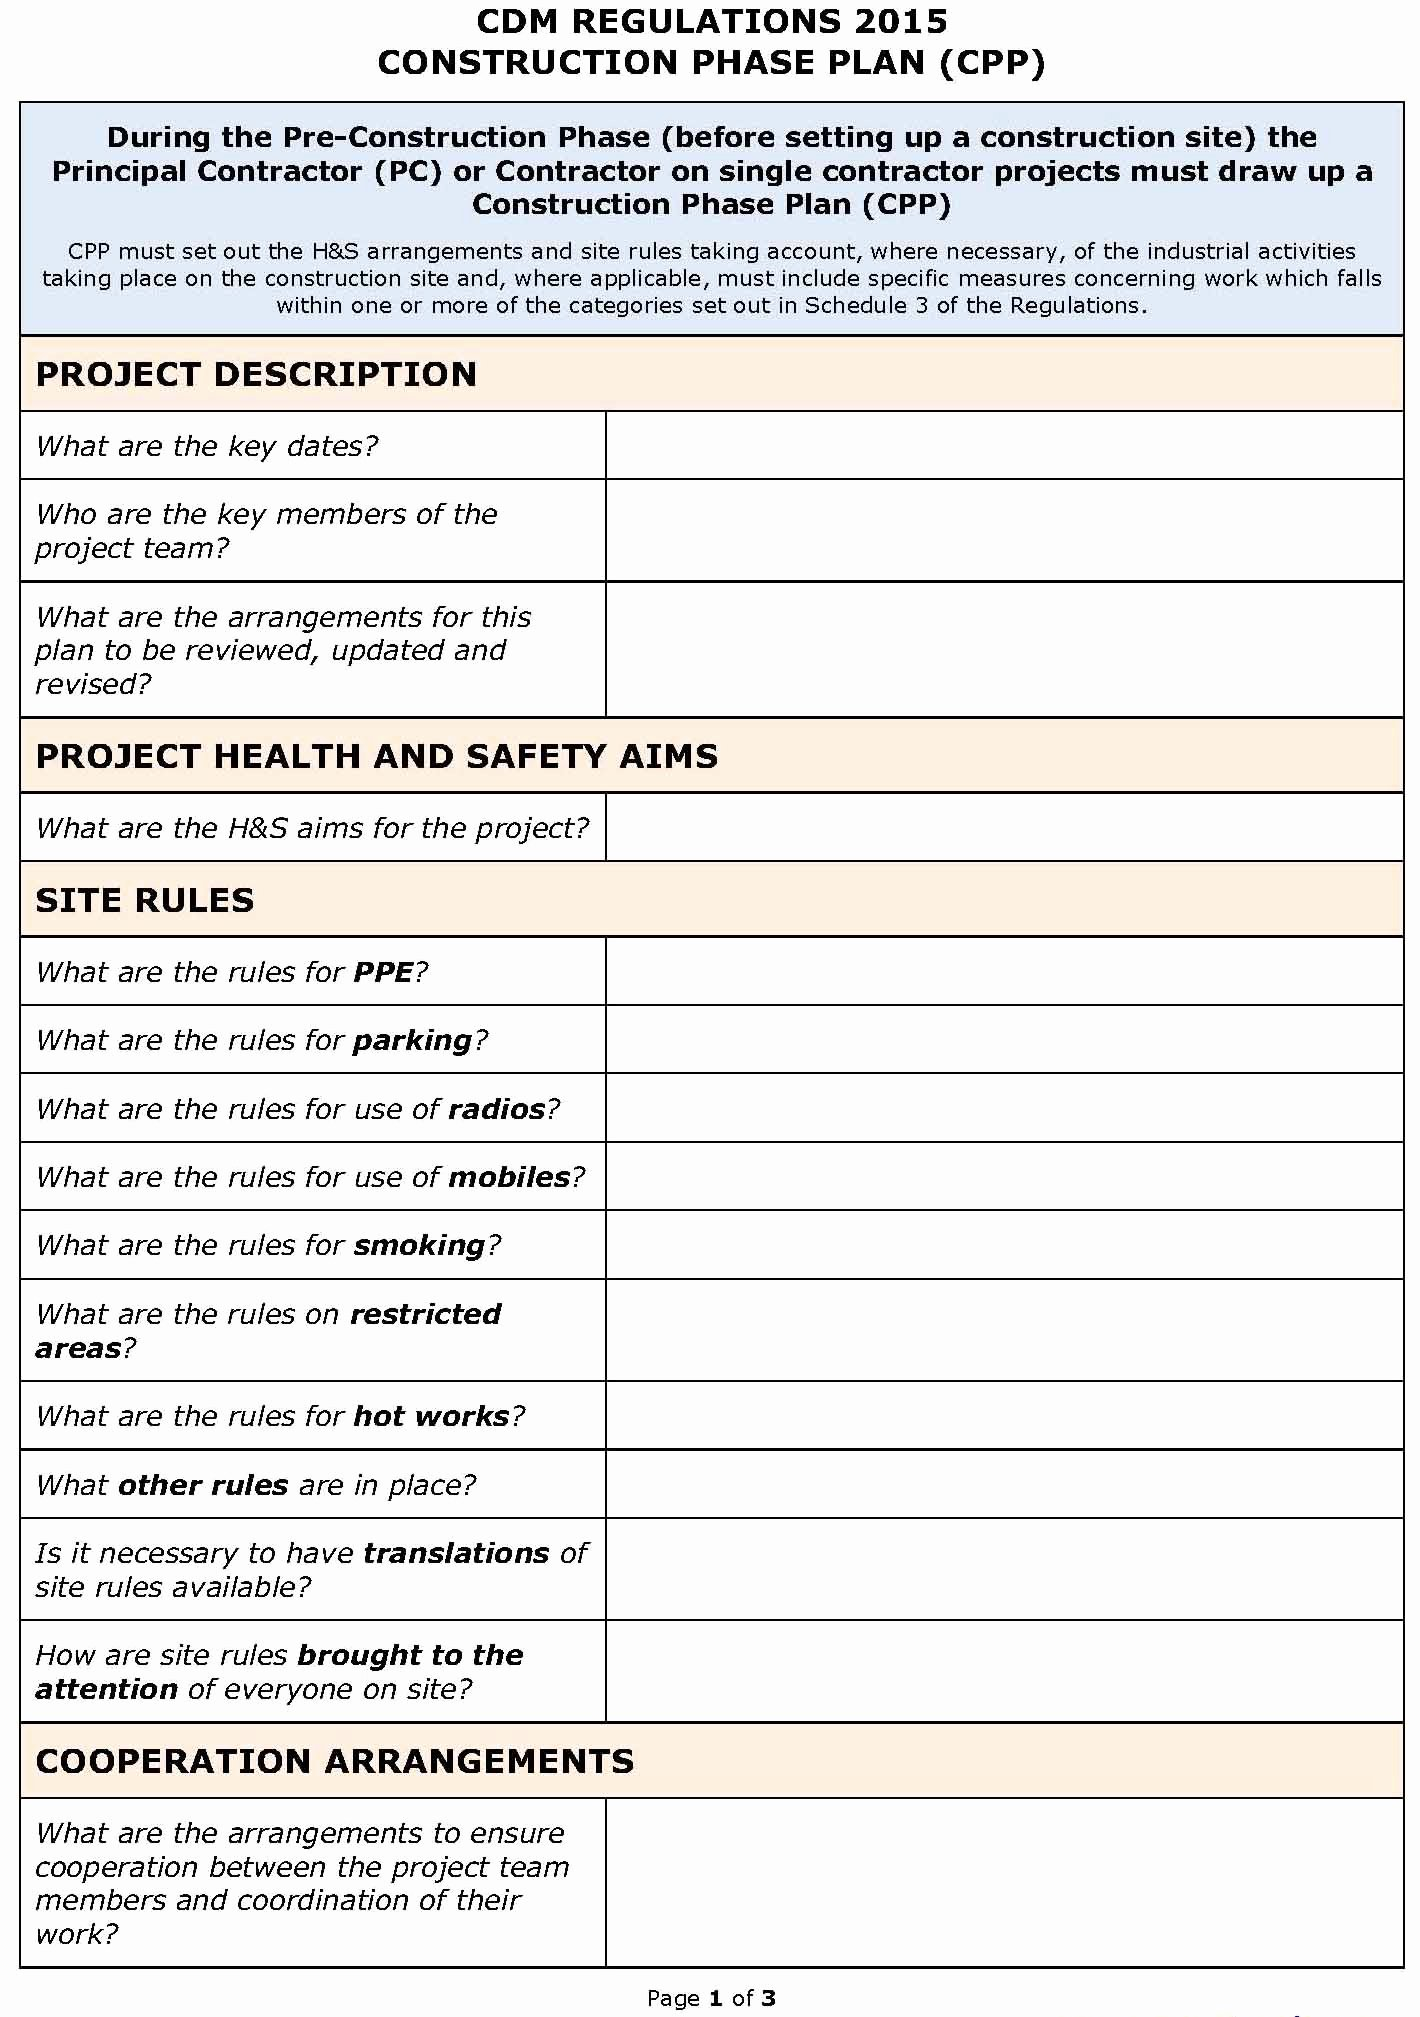 Pre Construction Checklist Template Lovely Cdm Regulations 2015 Safety Plan Cpp Template